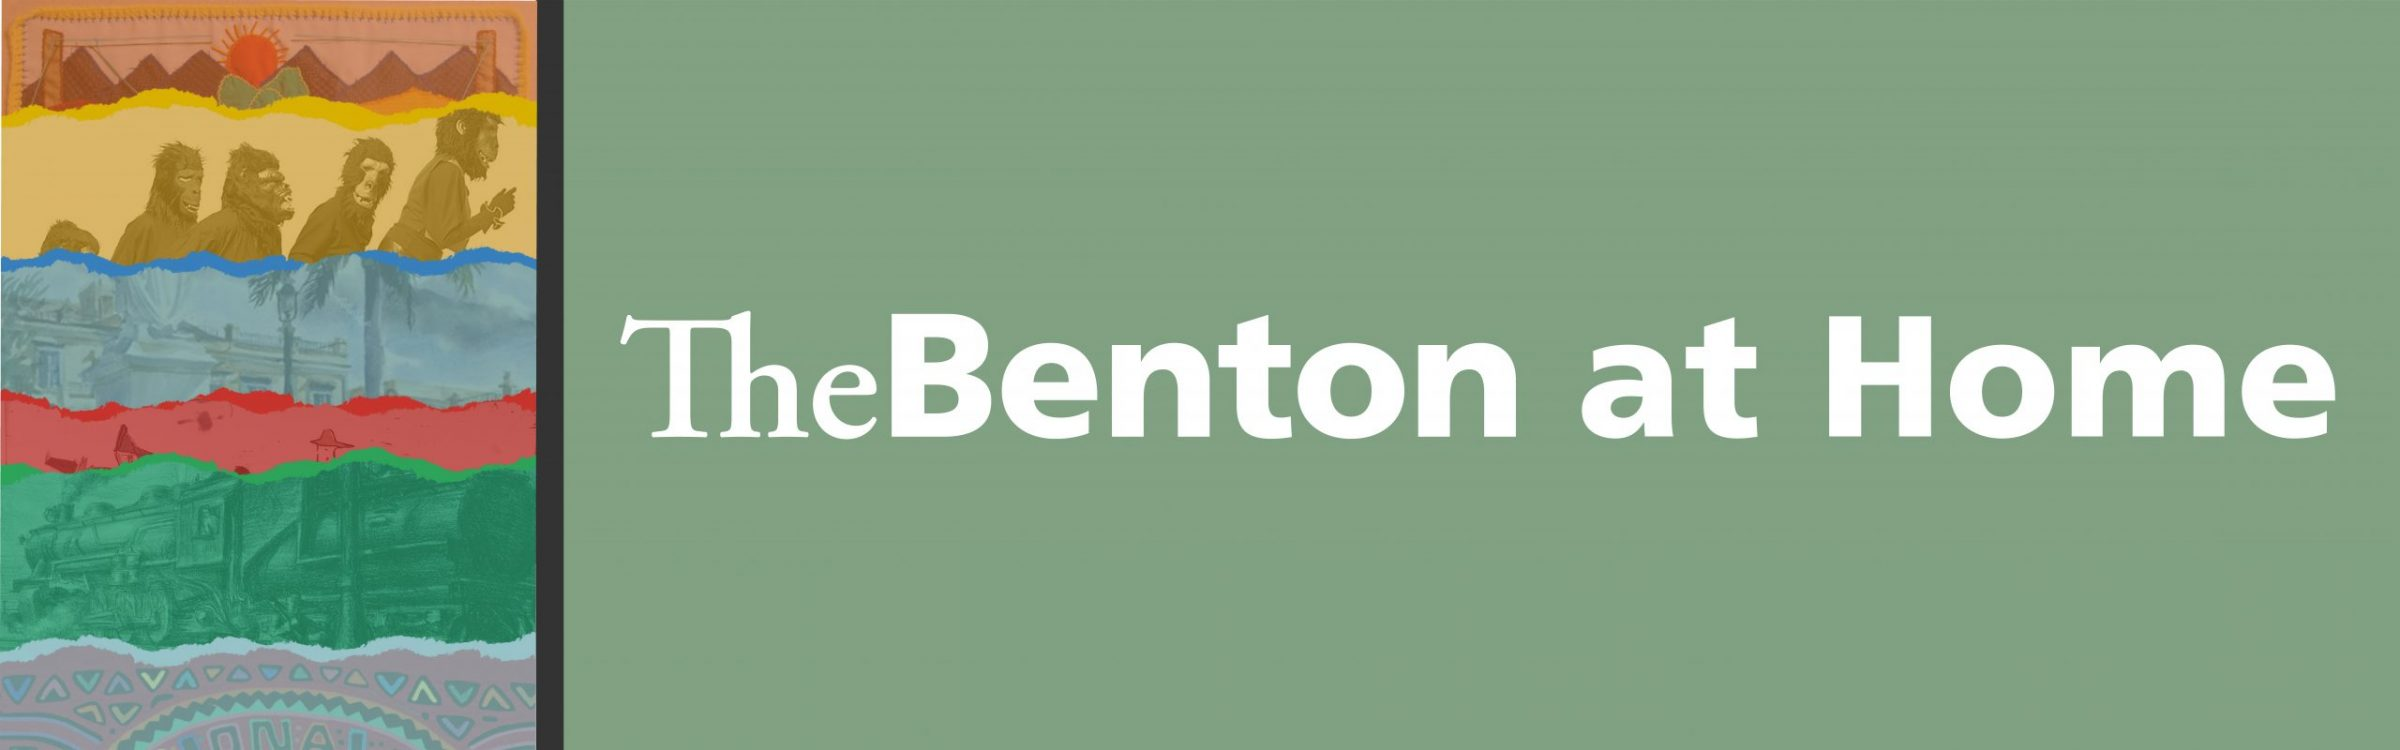 The Benton at Home